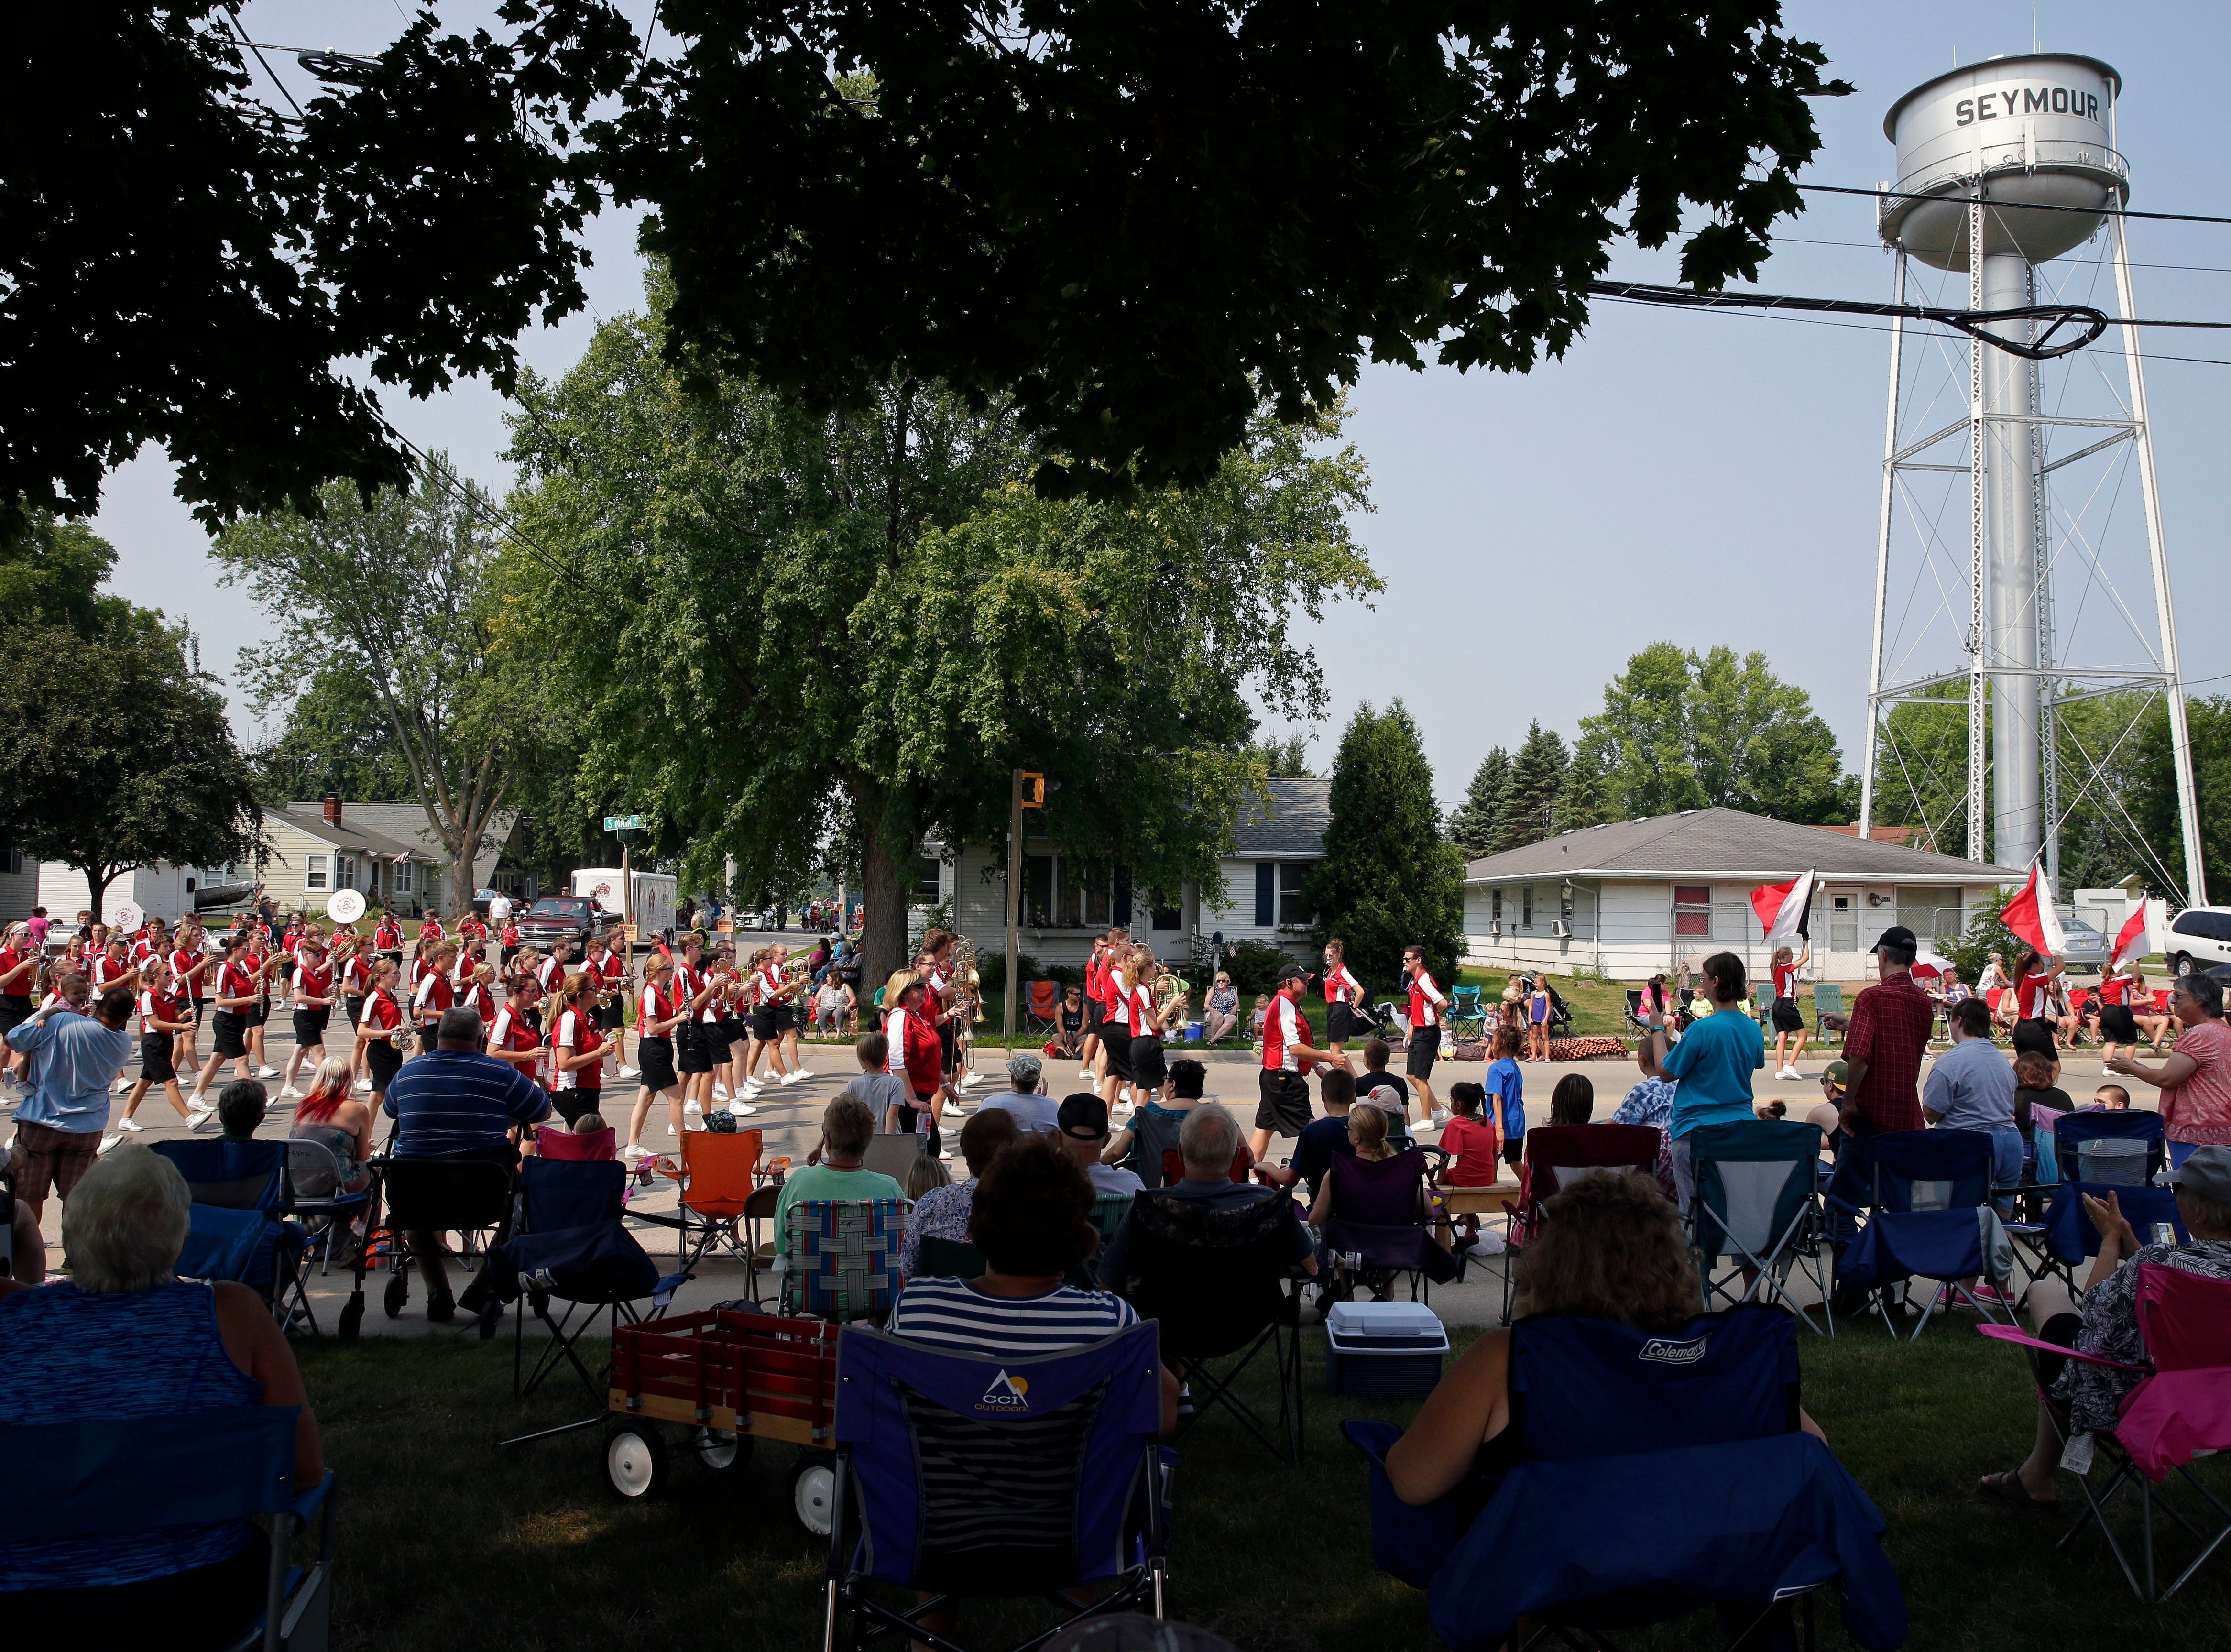 The Pulaski High School Band marches as the Hamburger Parade takes place during the 30th annual Burger Fest Saturday, August 11, 2018, in Seymour, Wis.